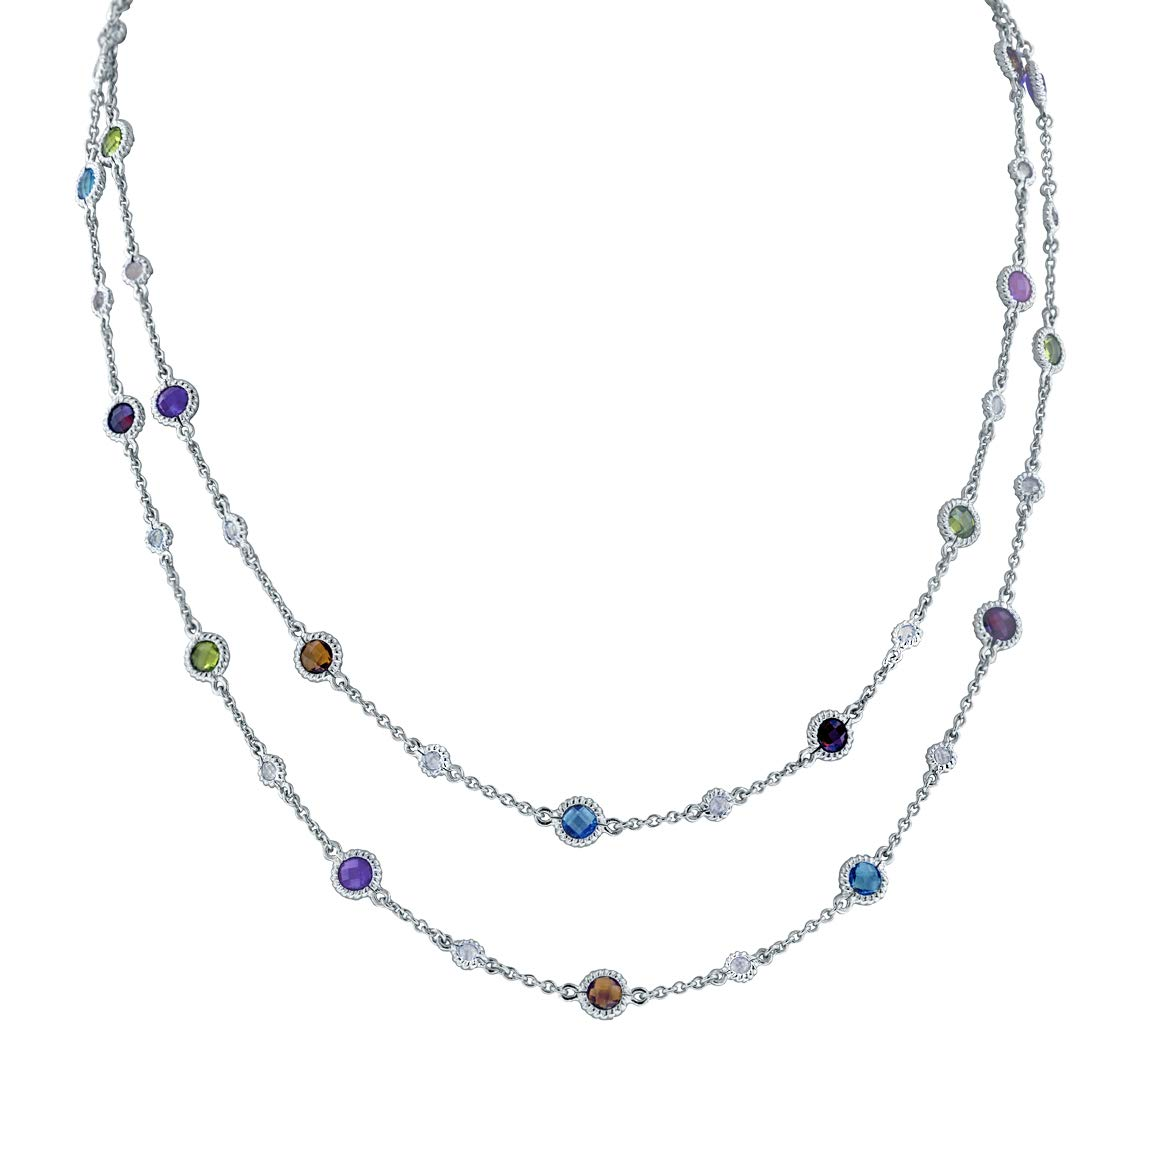 Robert Manse Designs Gem RoManse Rhodium Plated Silver Multi Gemstone 40'' Strand Necklace with White Topaz Accents by Robert Manse Designs